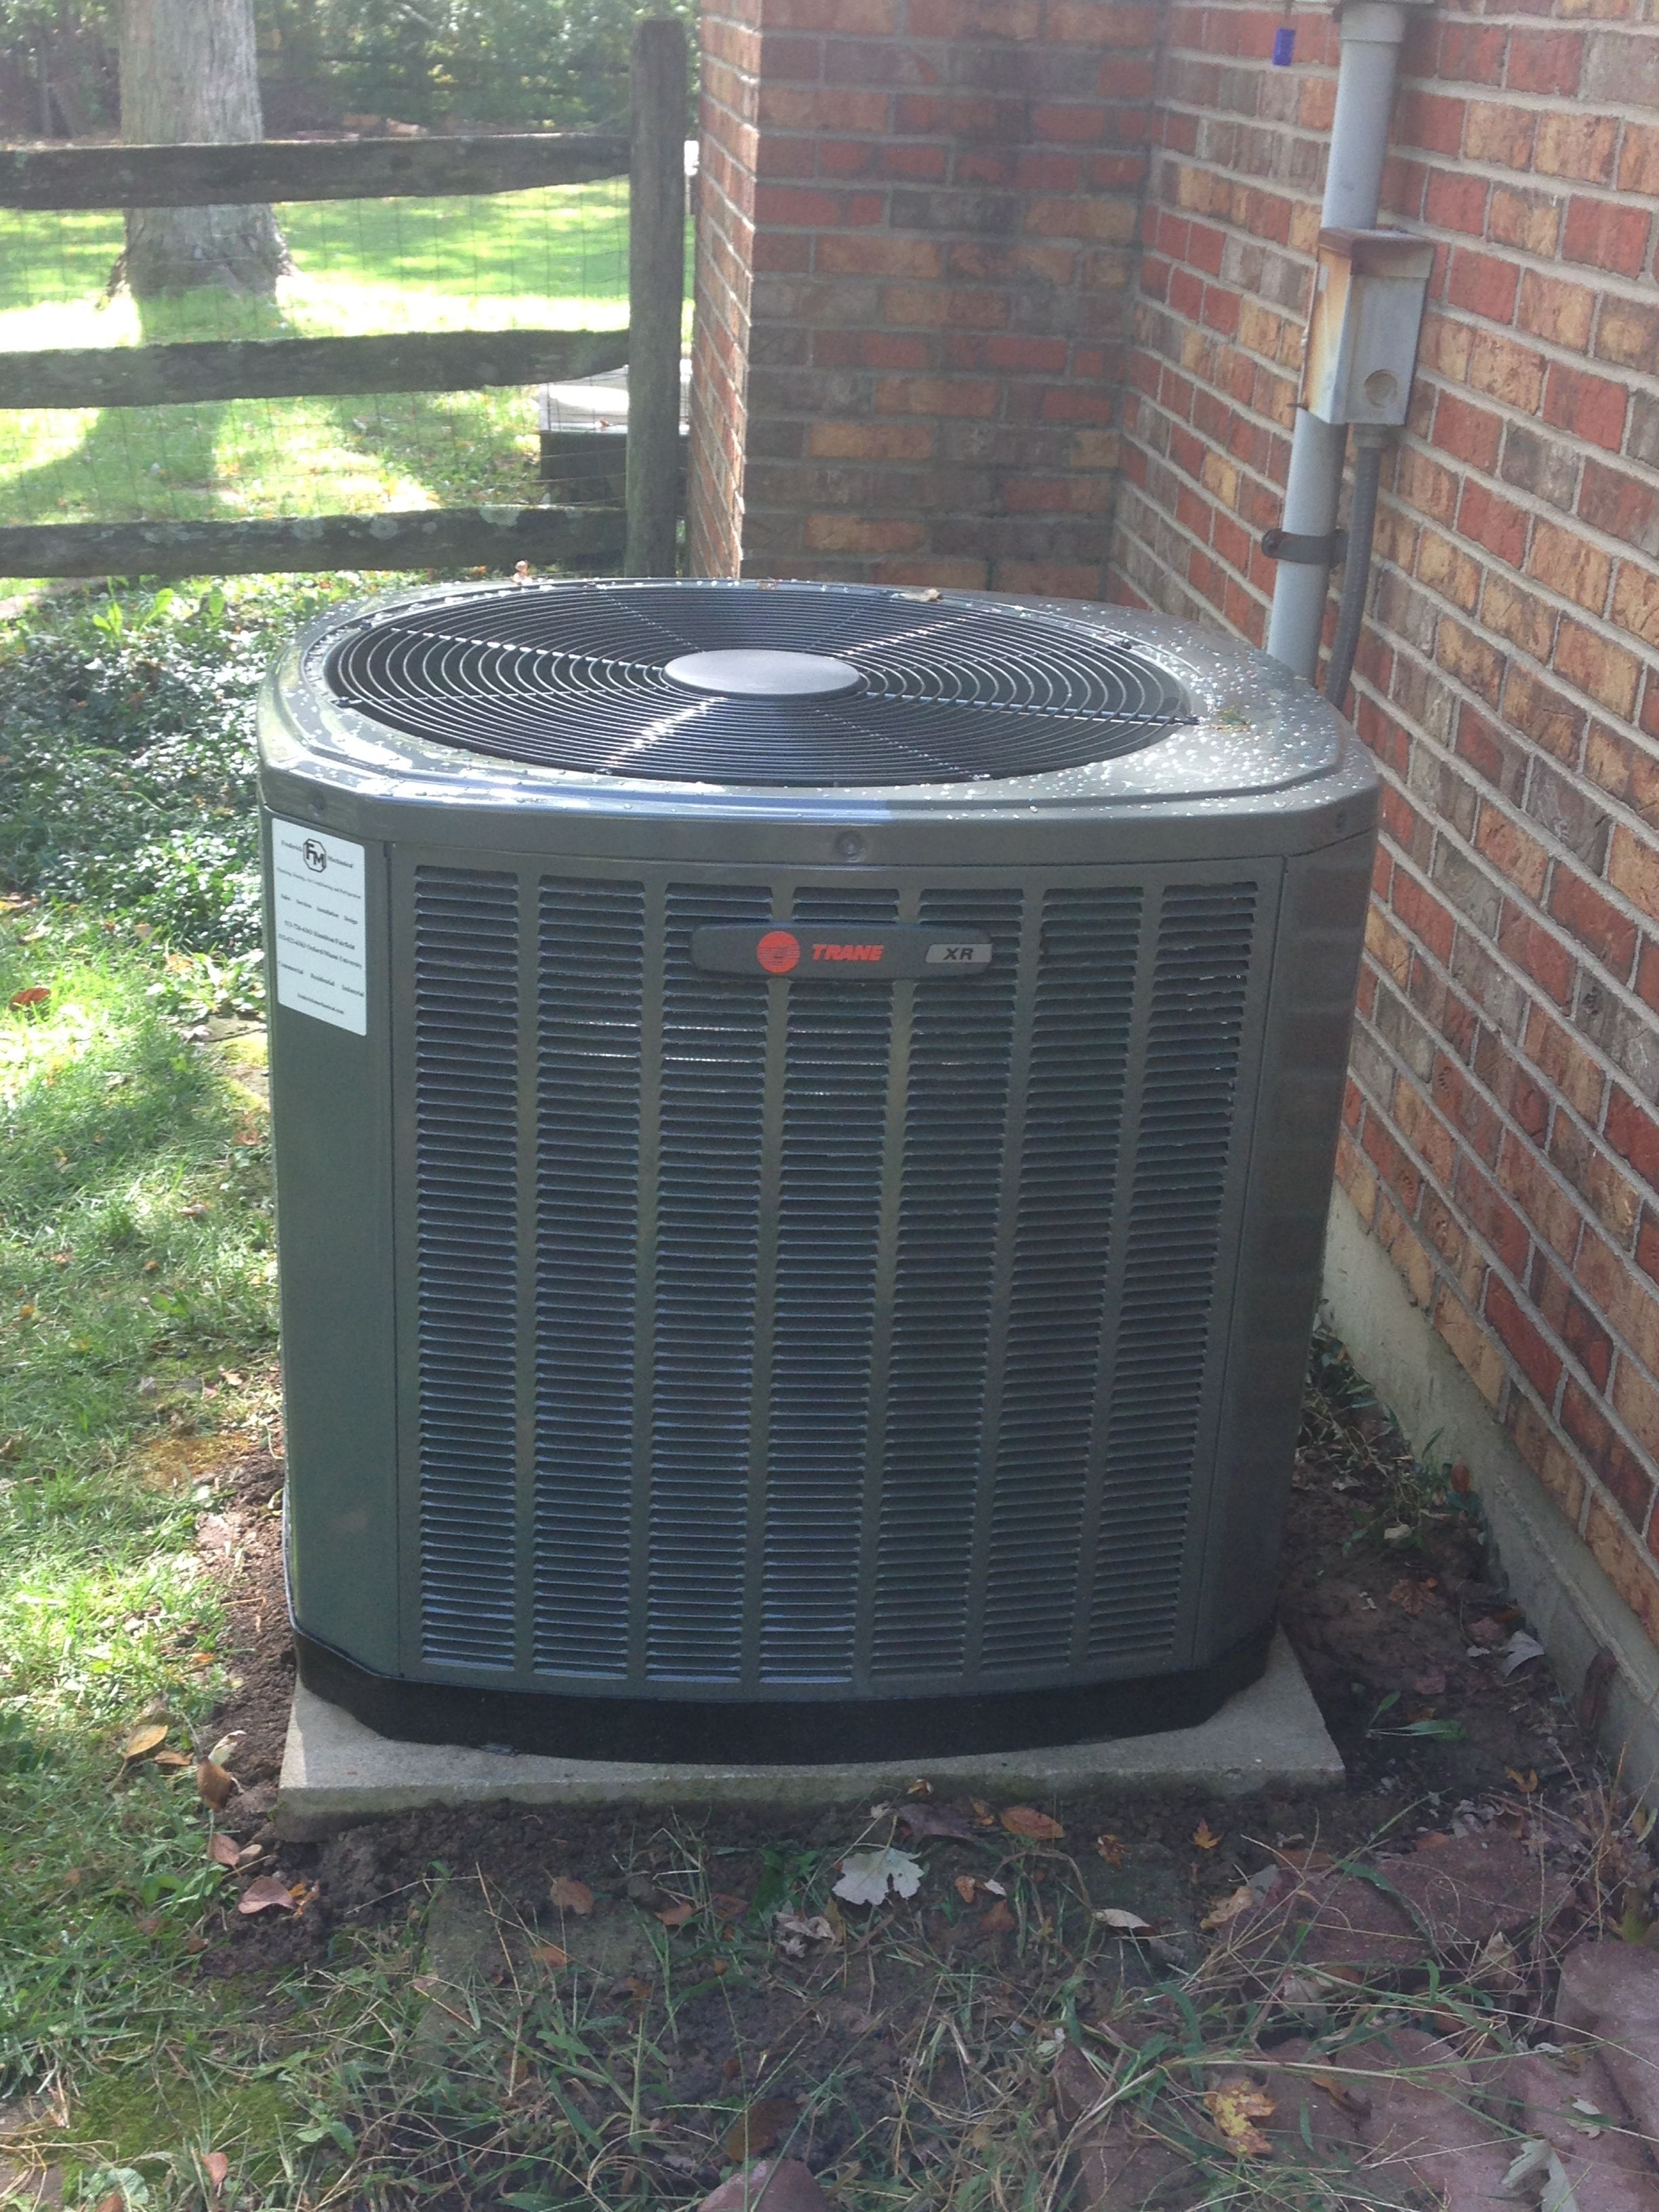 Trane Xr 15 heat pump. Installed in Oxford oh 45056